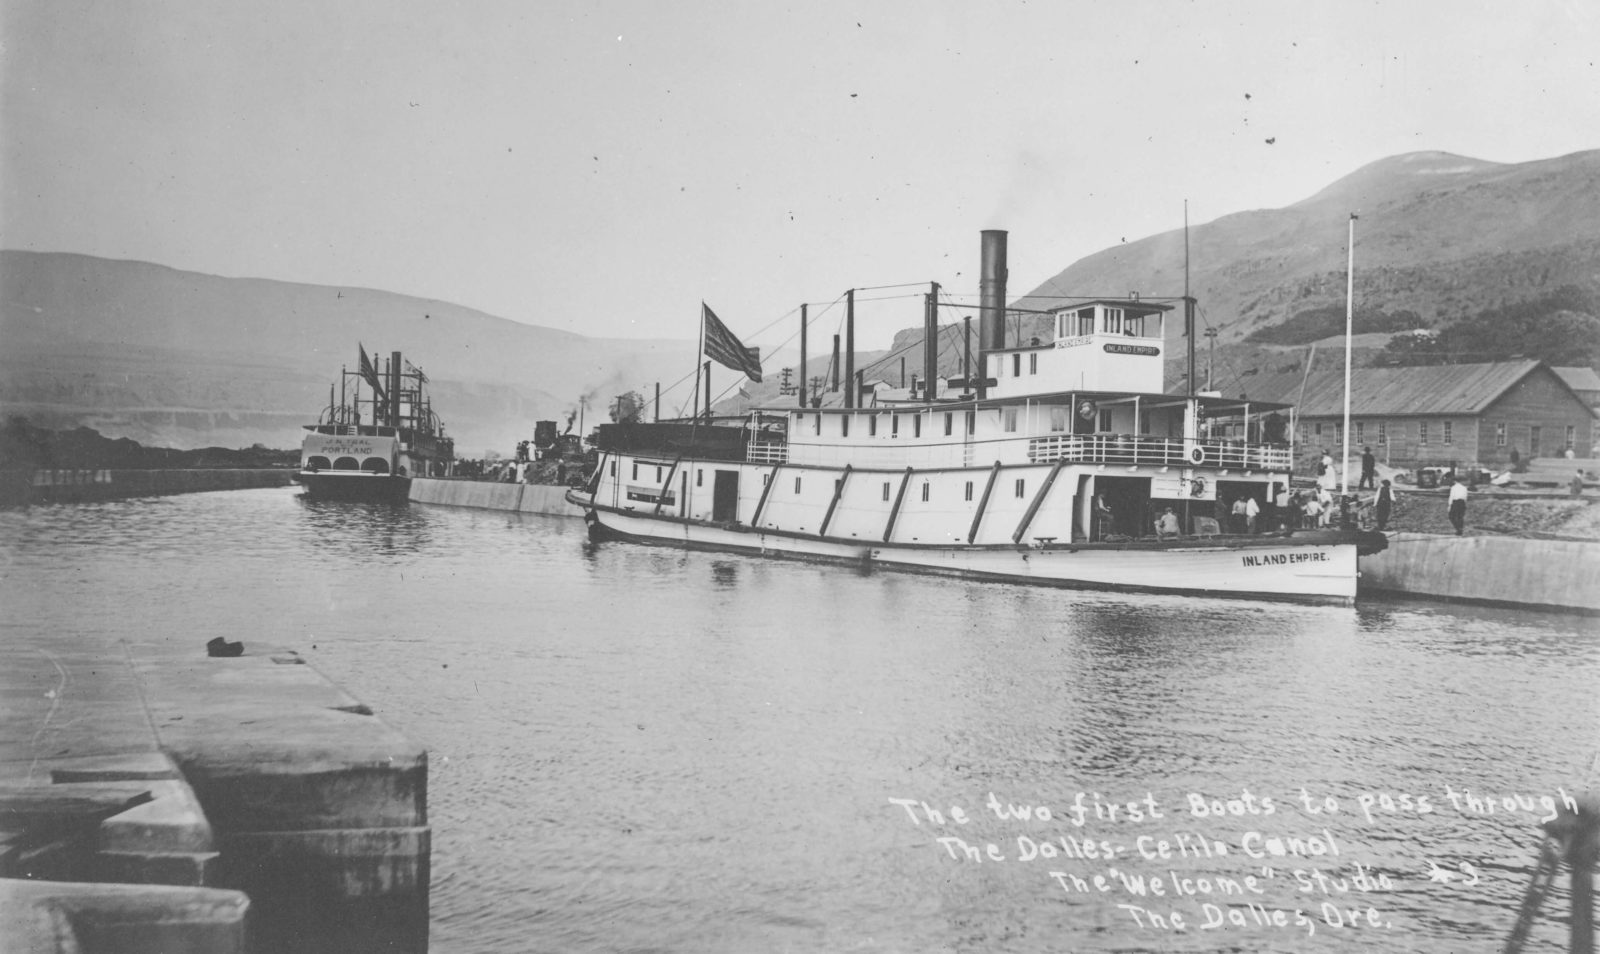 First two boats through the Dalles-Celilo Canal, 1915.